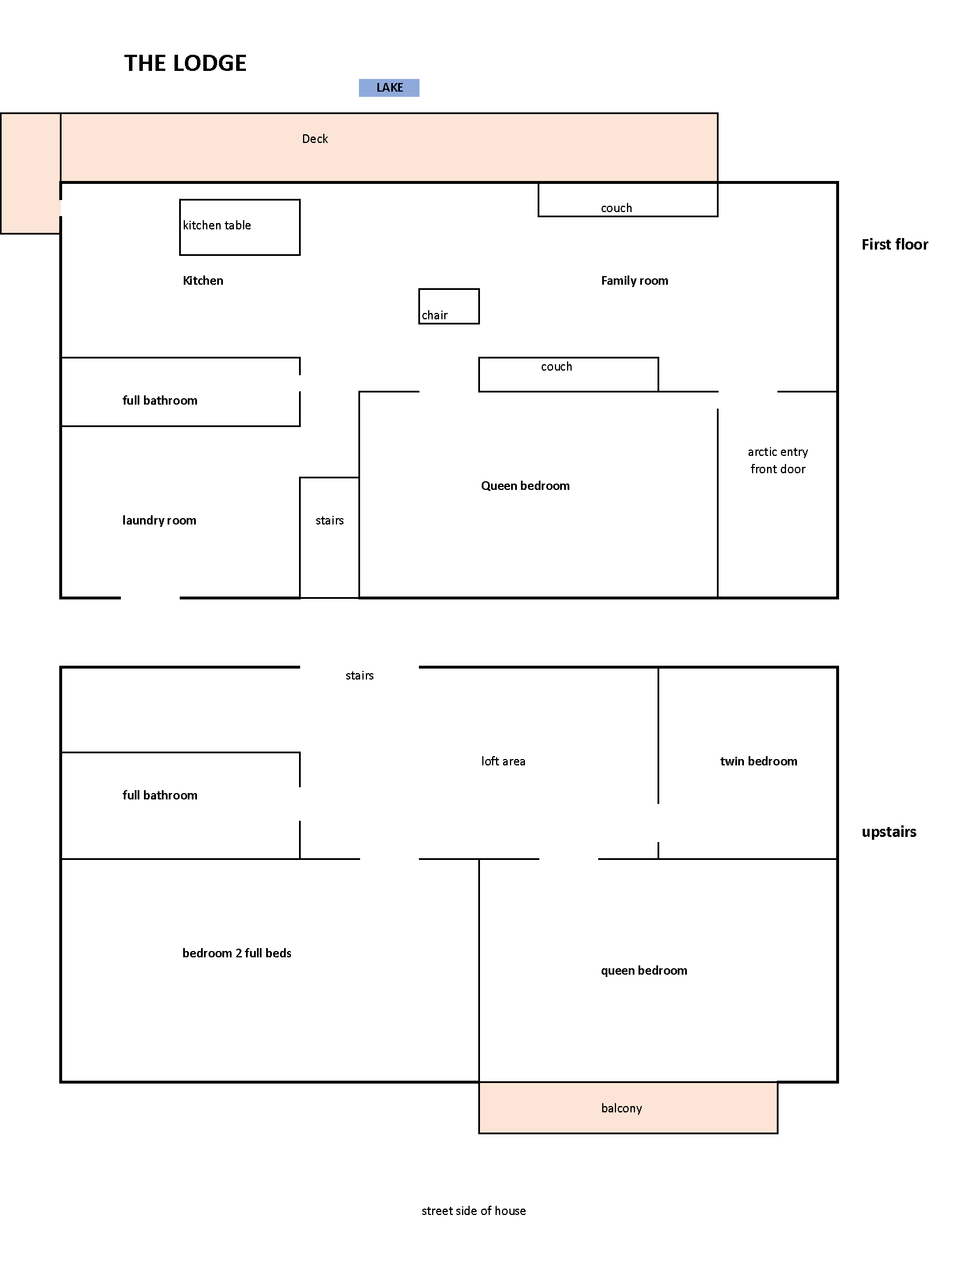 new lodge layout.png